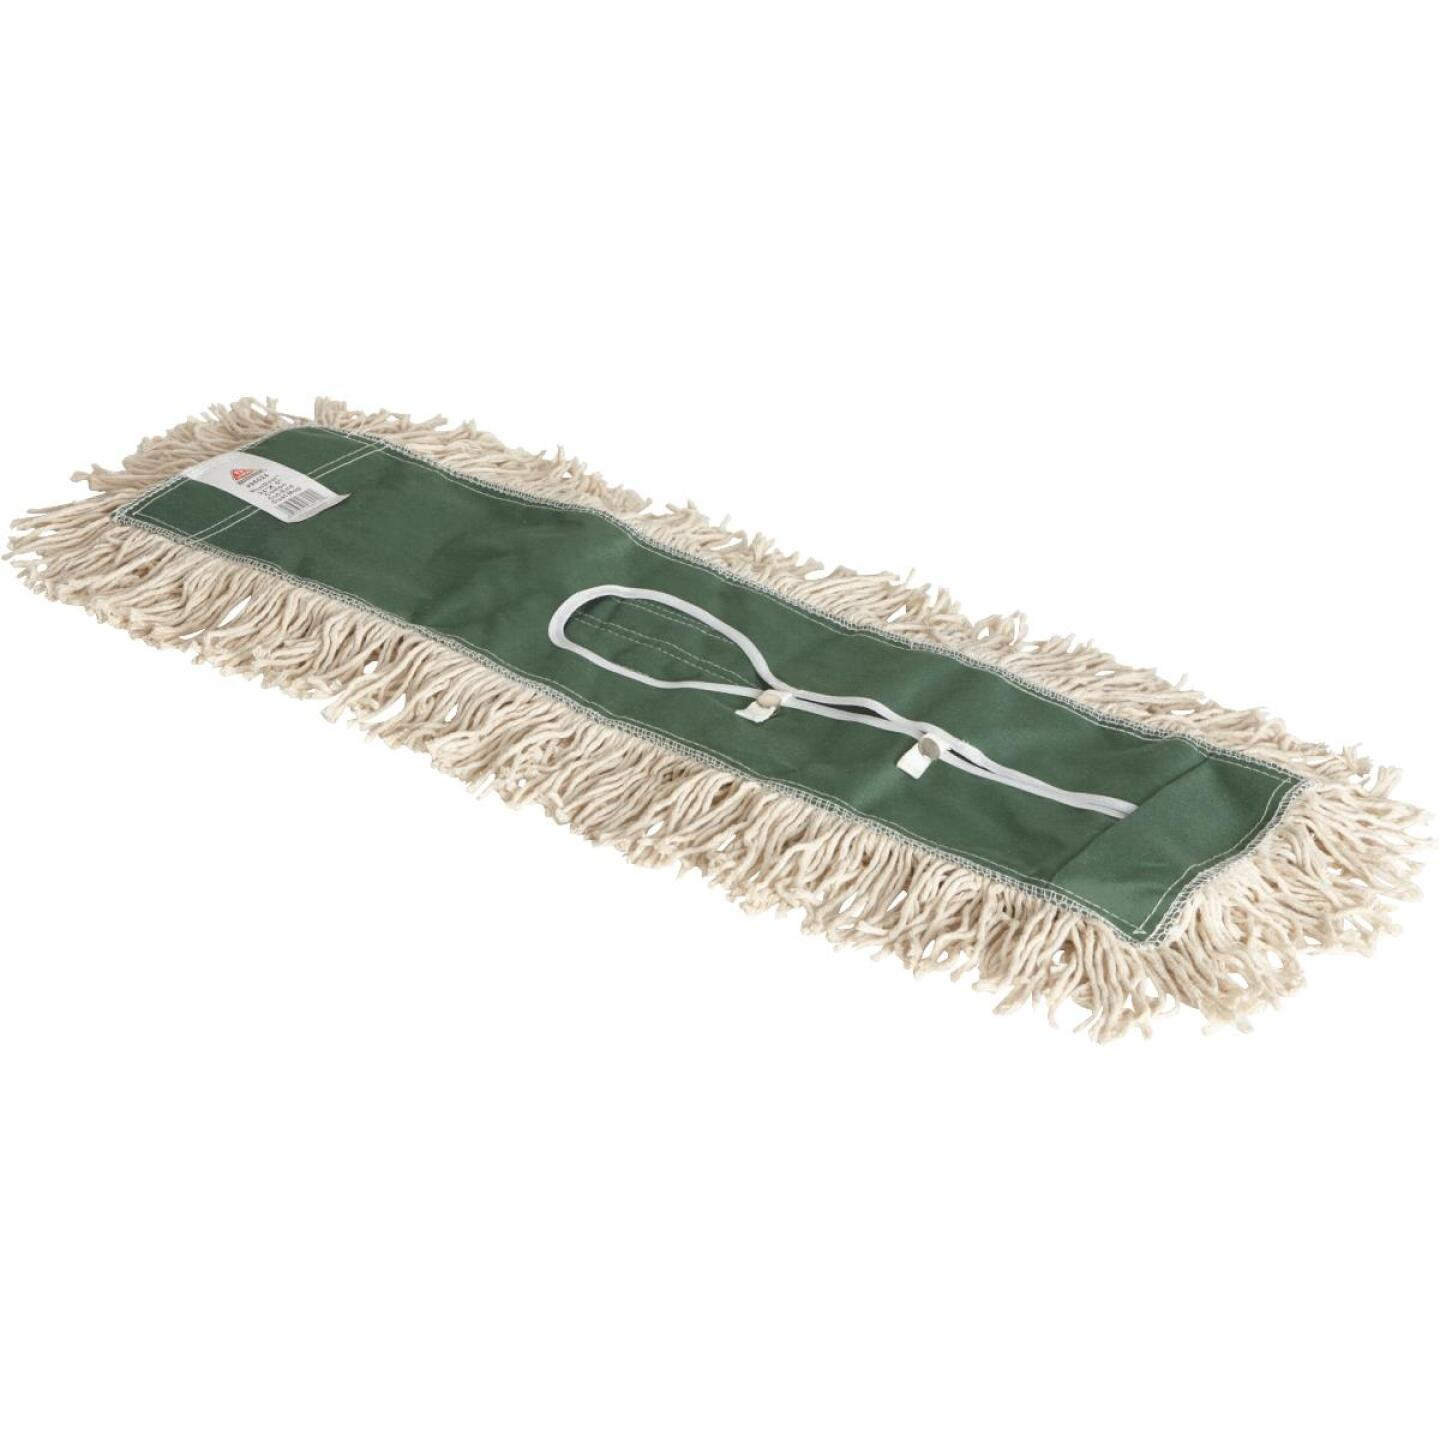 Nexstep Commercial 24 In. Cotton Dust Mop Refill Image 2